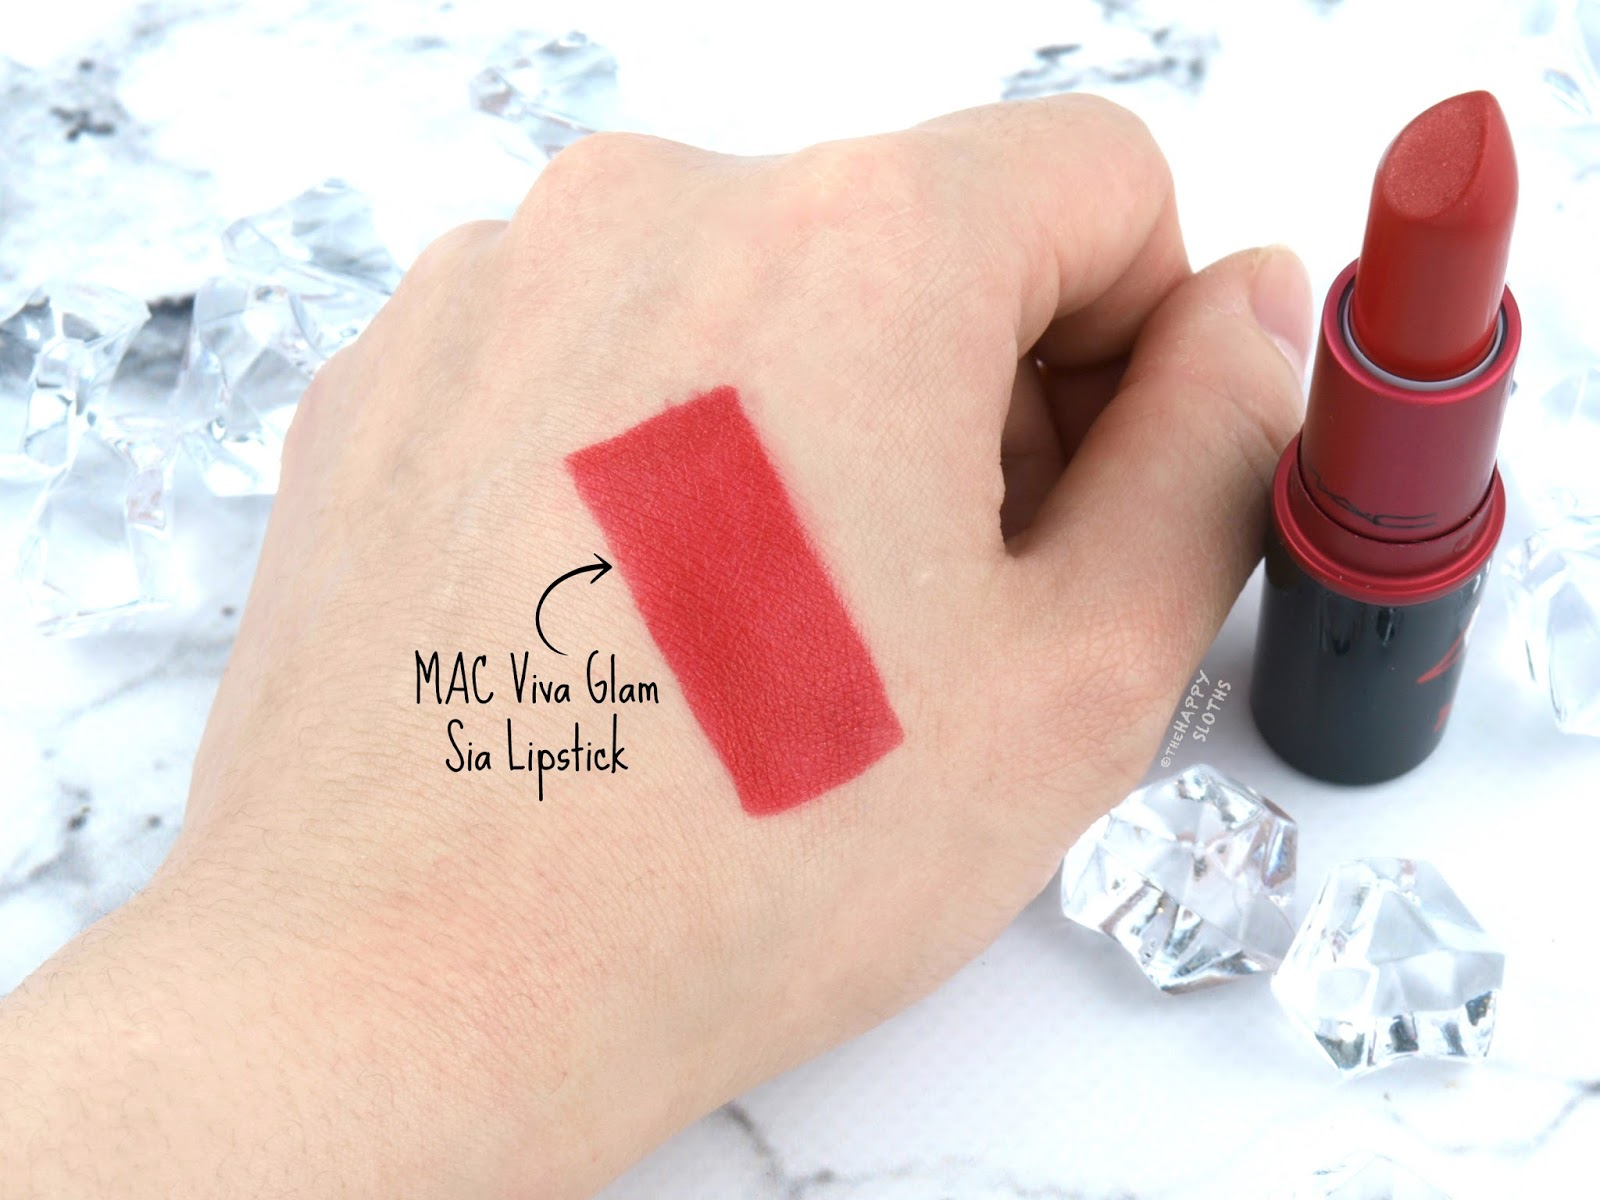 MAC | Viva Glam Sia Lipstick: Review and Swatches